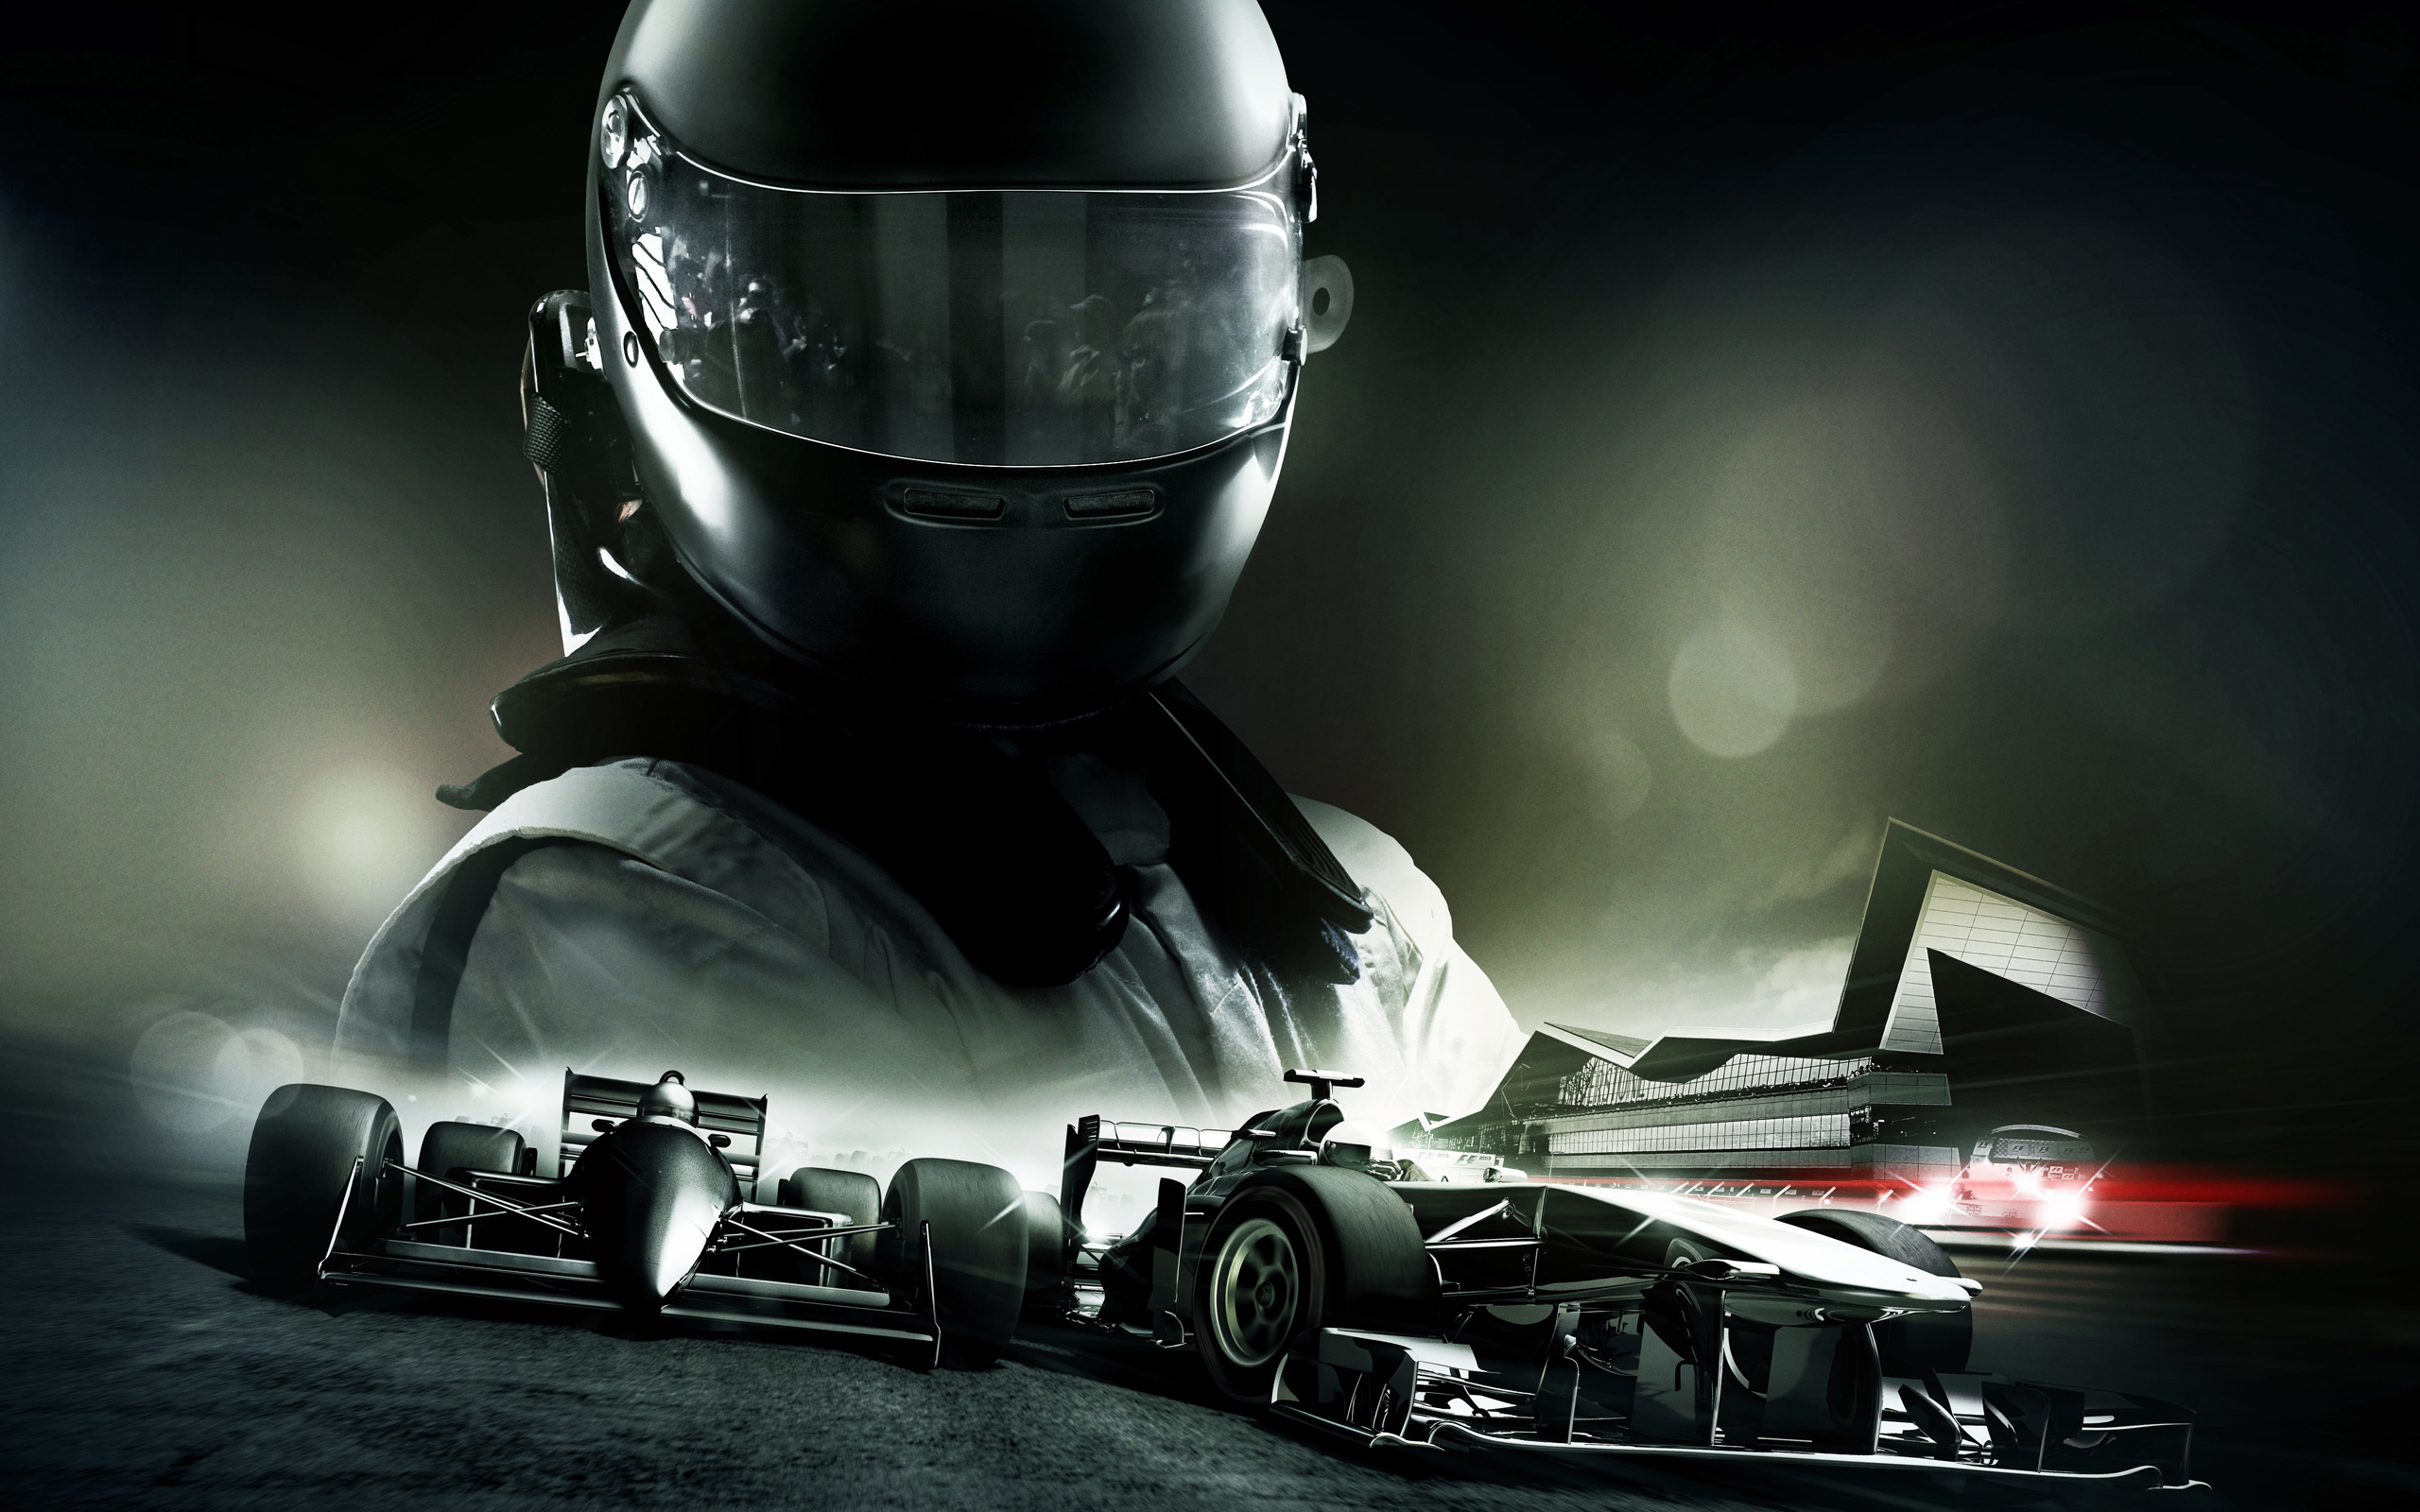 1366x768 F1 2013 Race Cars Car 1366x768 Resolution Wallpaper Hd Games 4k Wallpapers Images Photos And Background